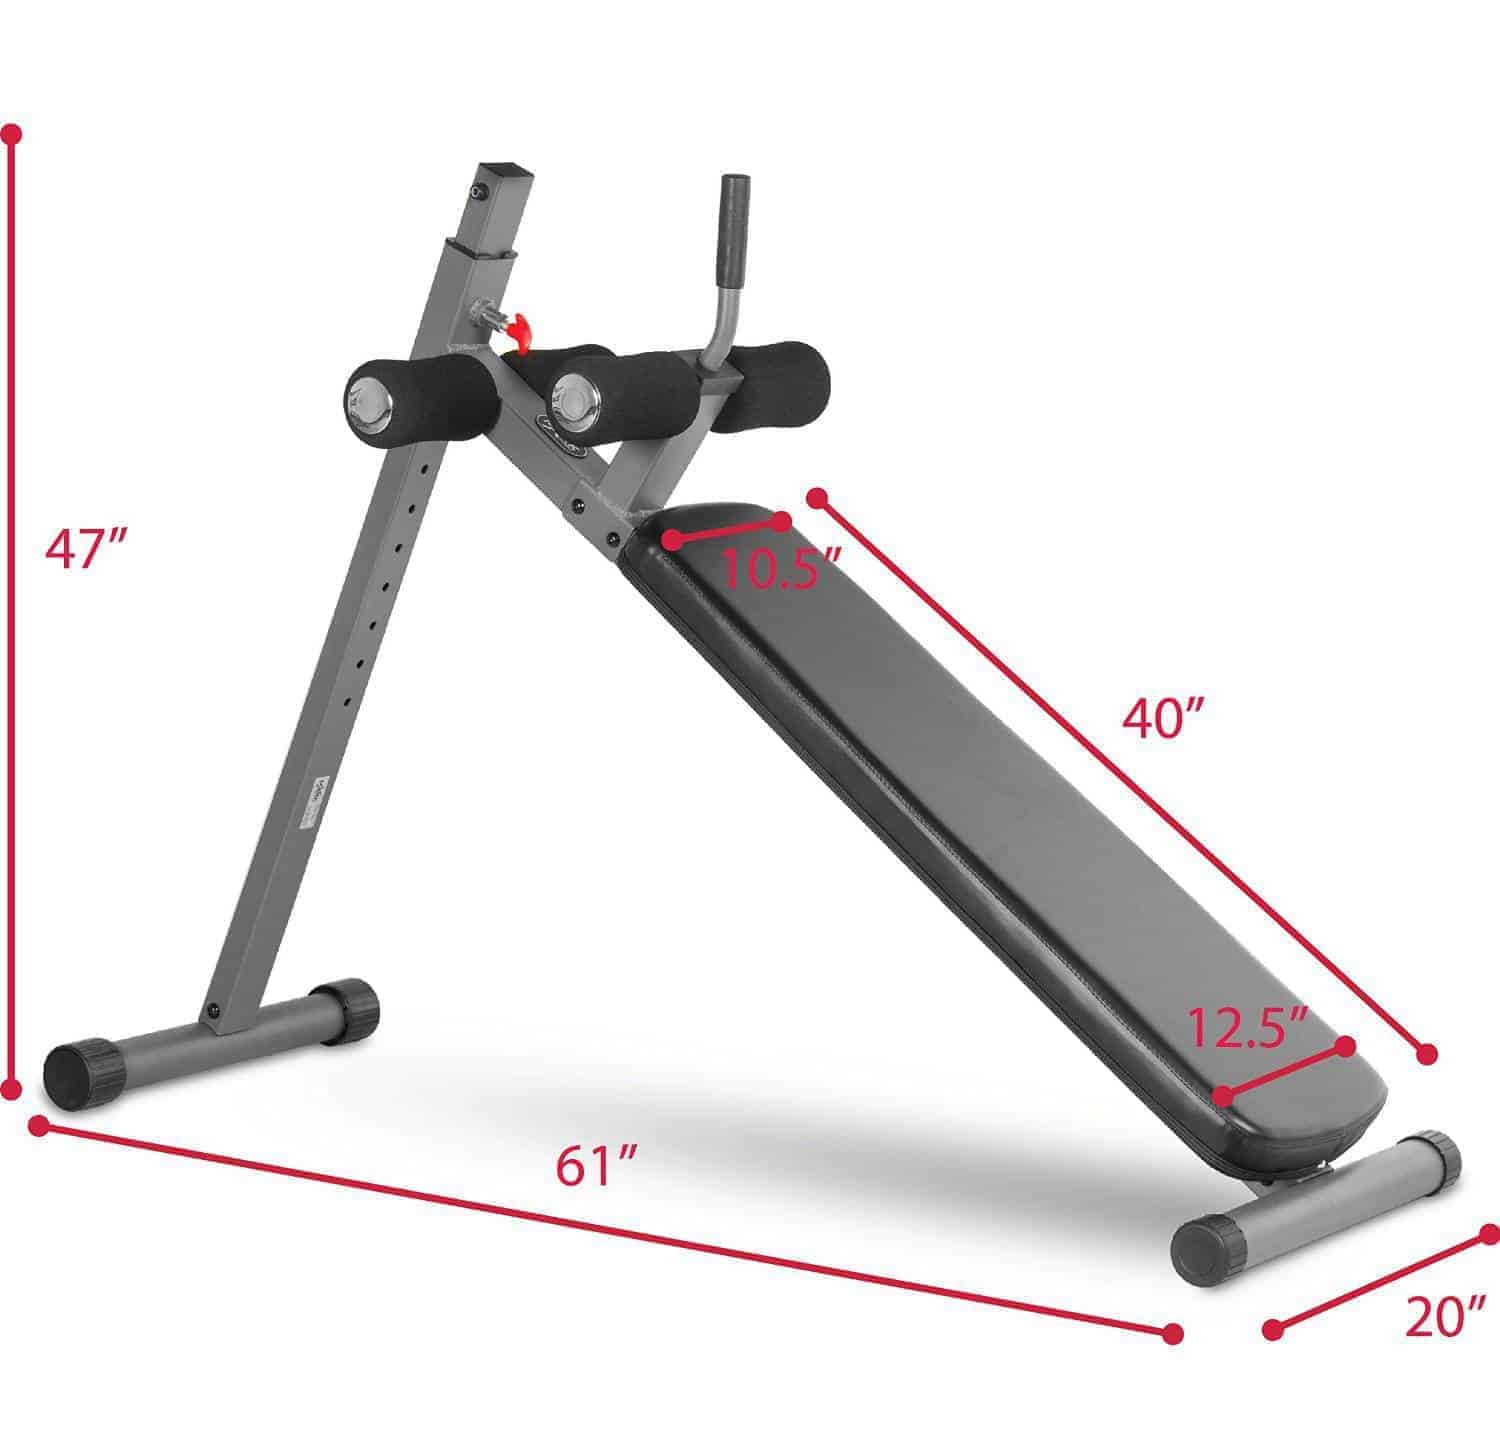 Xmark 12 Position Ergonomic Adjustable Decline Ab Bench